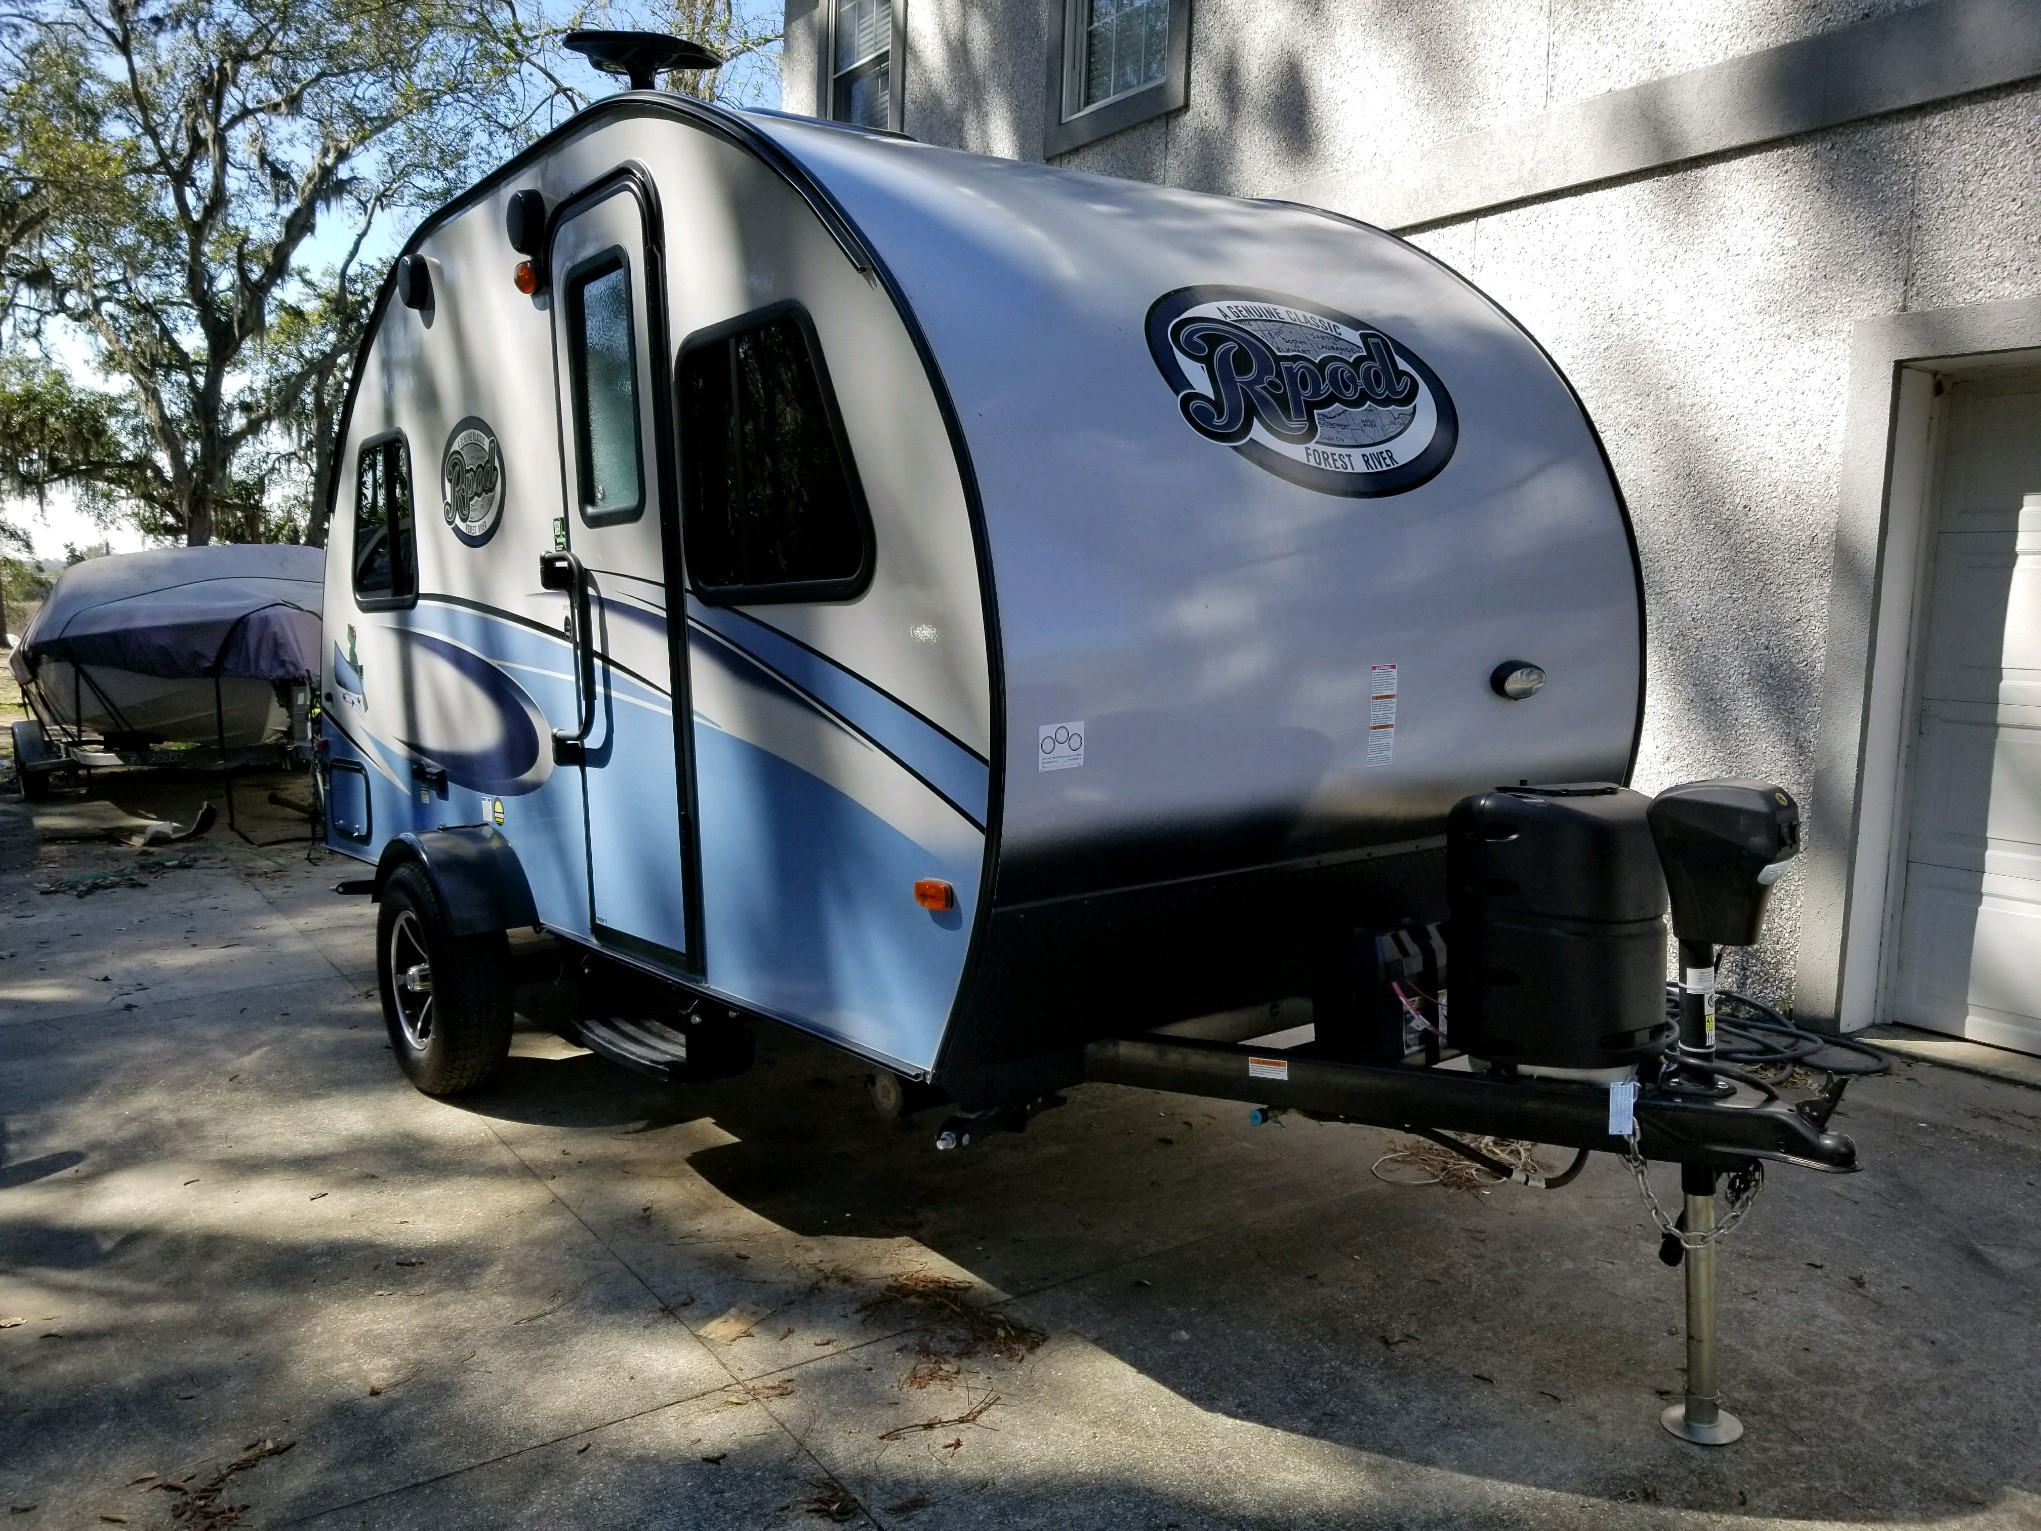 Top 25 Jekyll Island Campground Rv Rentals And Motorhome Rentals